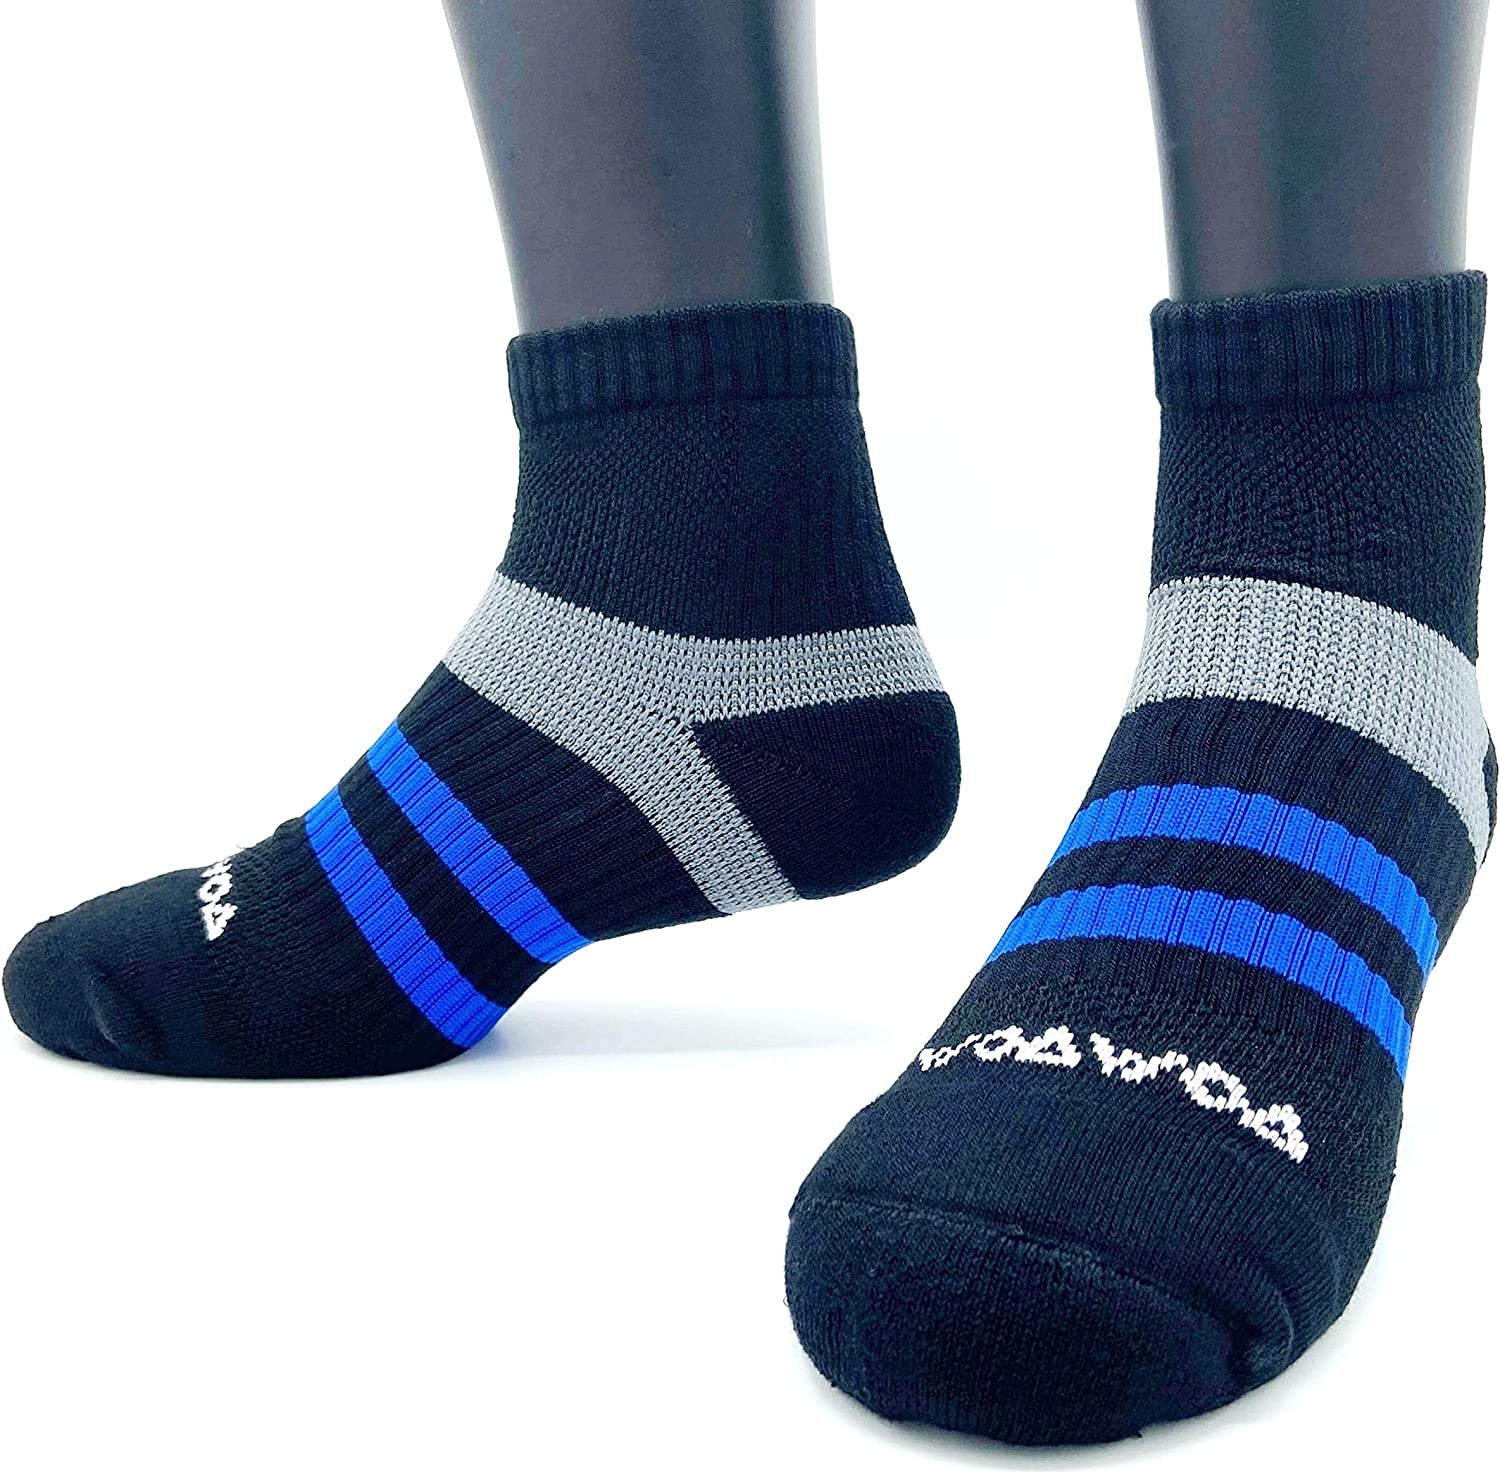 Anti Sweat Odor Control Limited time sale Socks for Feet Athletic Clearance SALE Limited time Quarter Sweaty